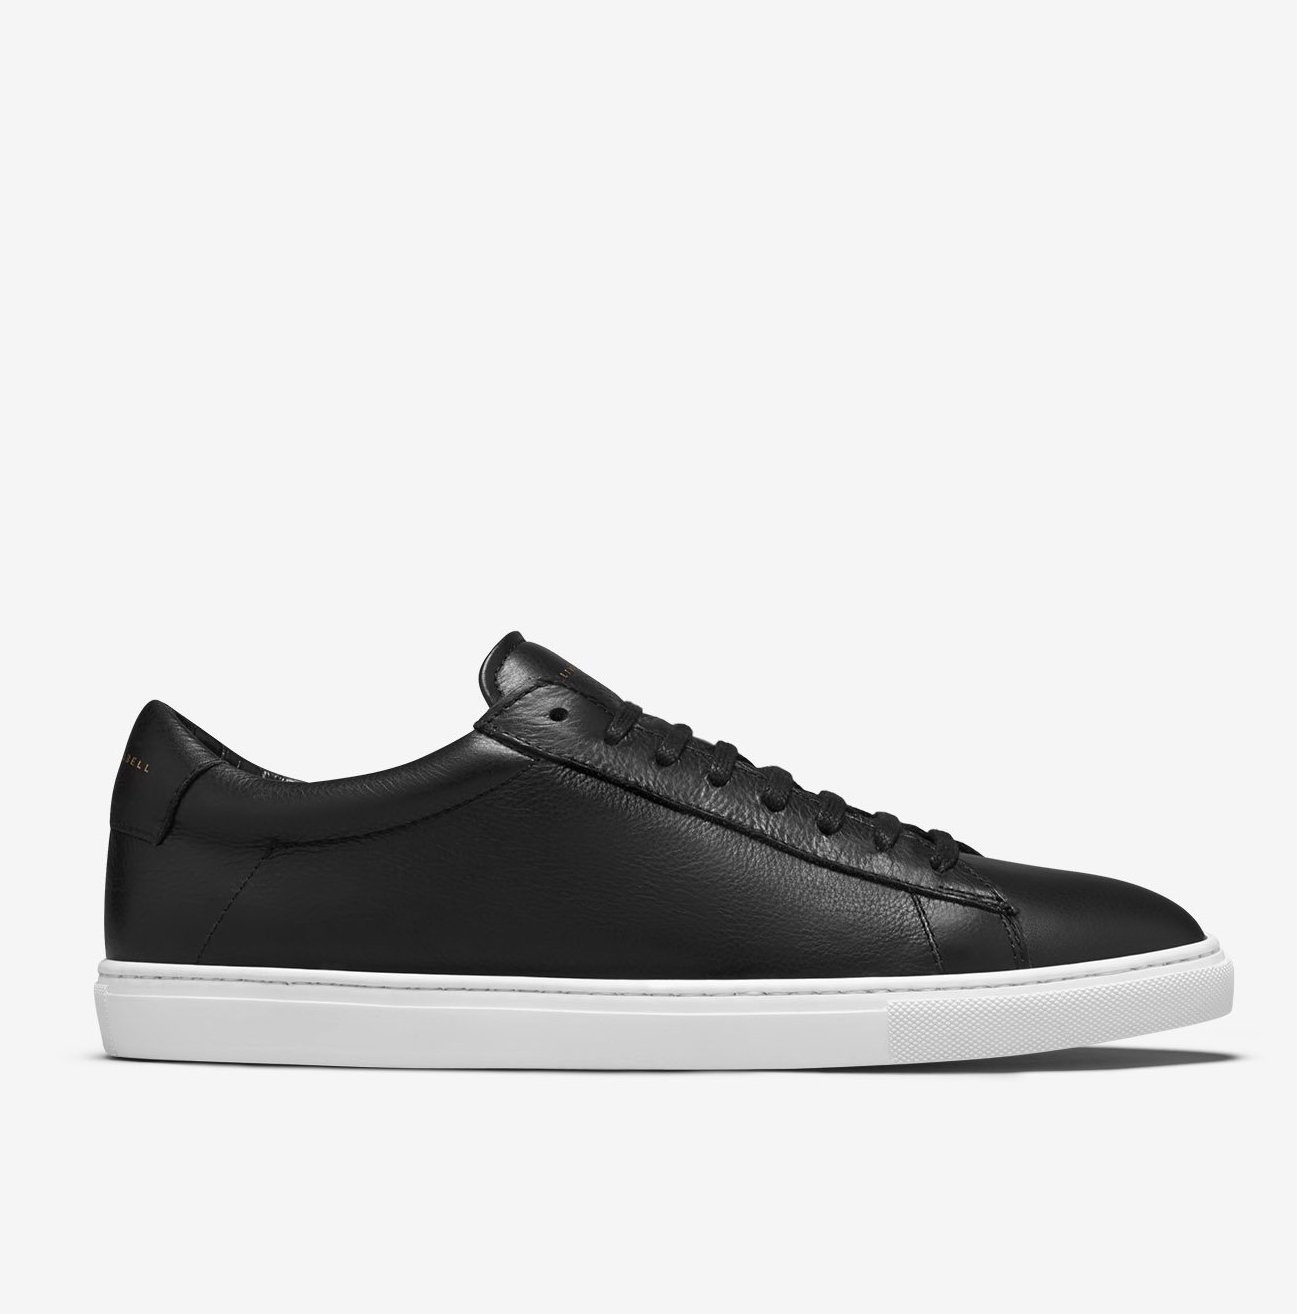 $178 - Oliver Cabell black low-top shoes   I love a great simple sneaker! These black and white Oliver Cabell's are sure to make a great gift to someone that's picky!